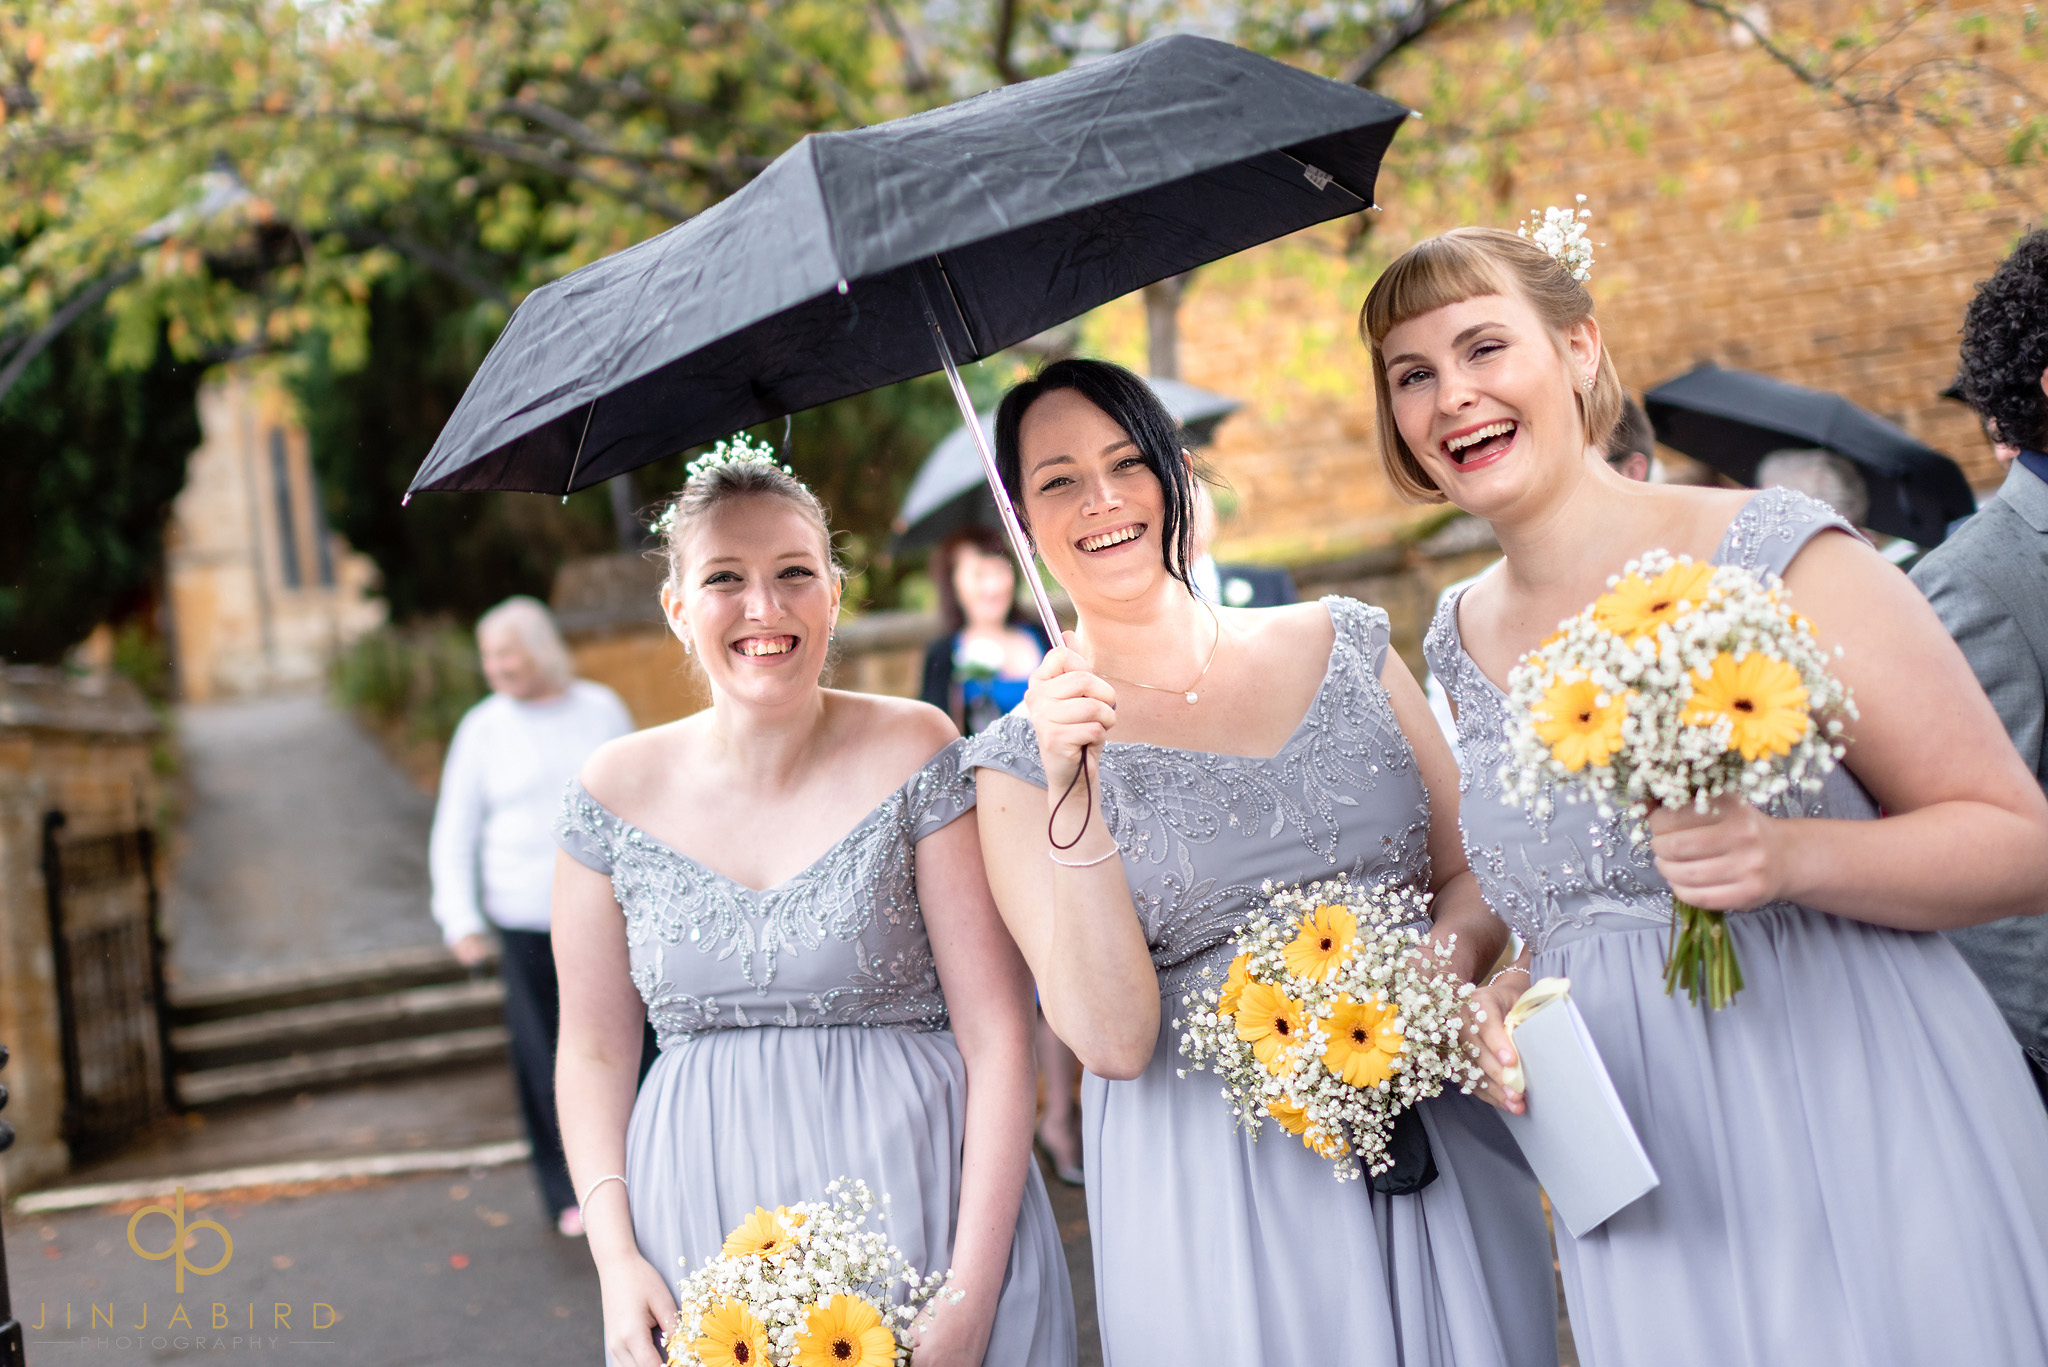 brides-maids under umbrella